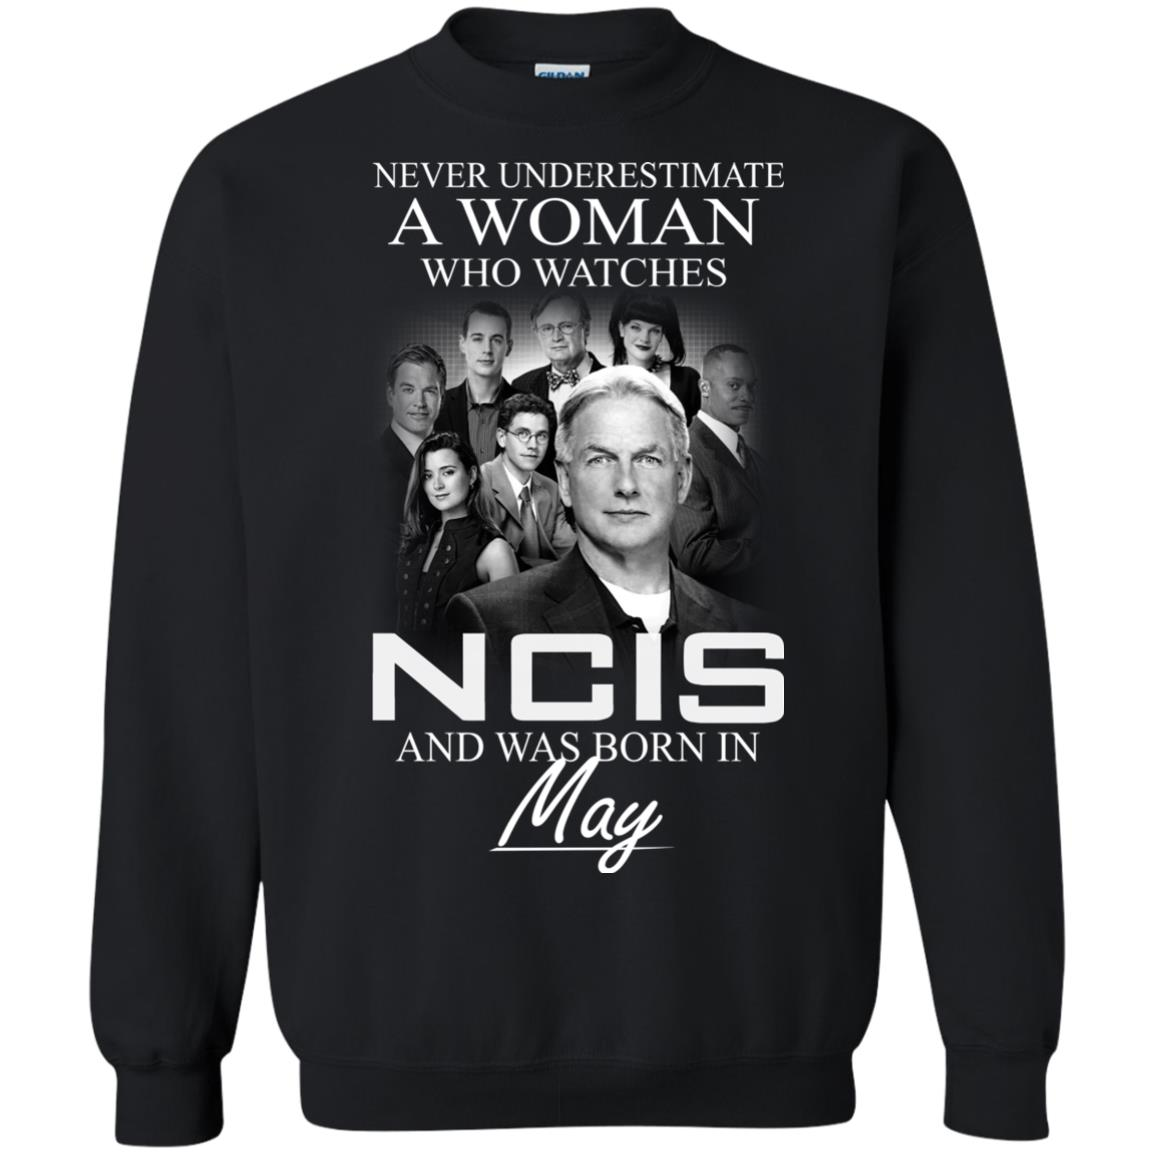 Never underestimate A Woman who watches NCIS and was born in May shirt - image 1188